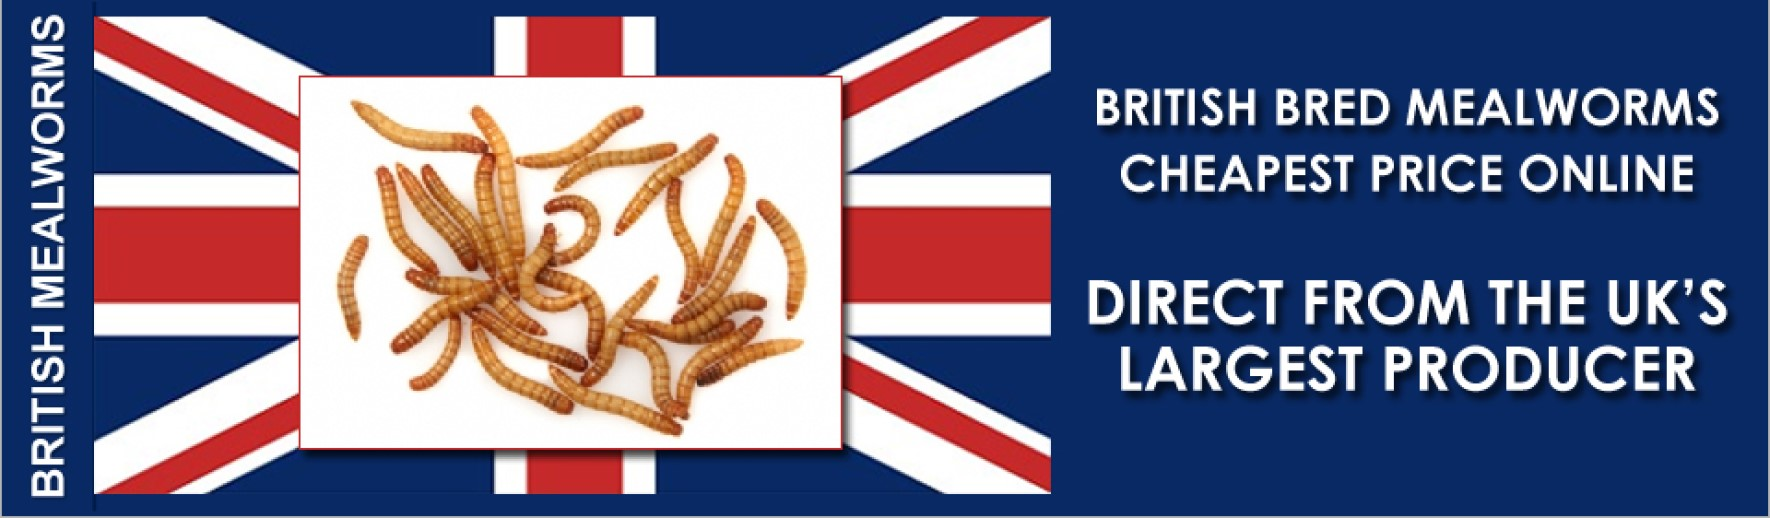 British Bred Mealworms